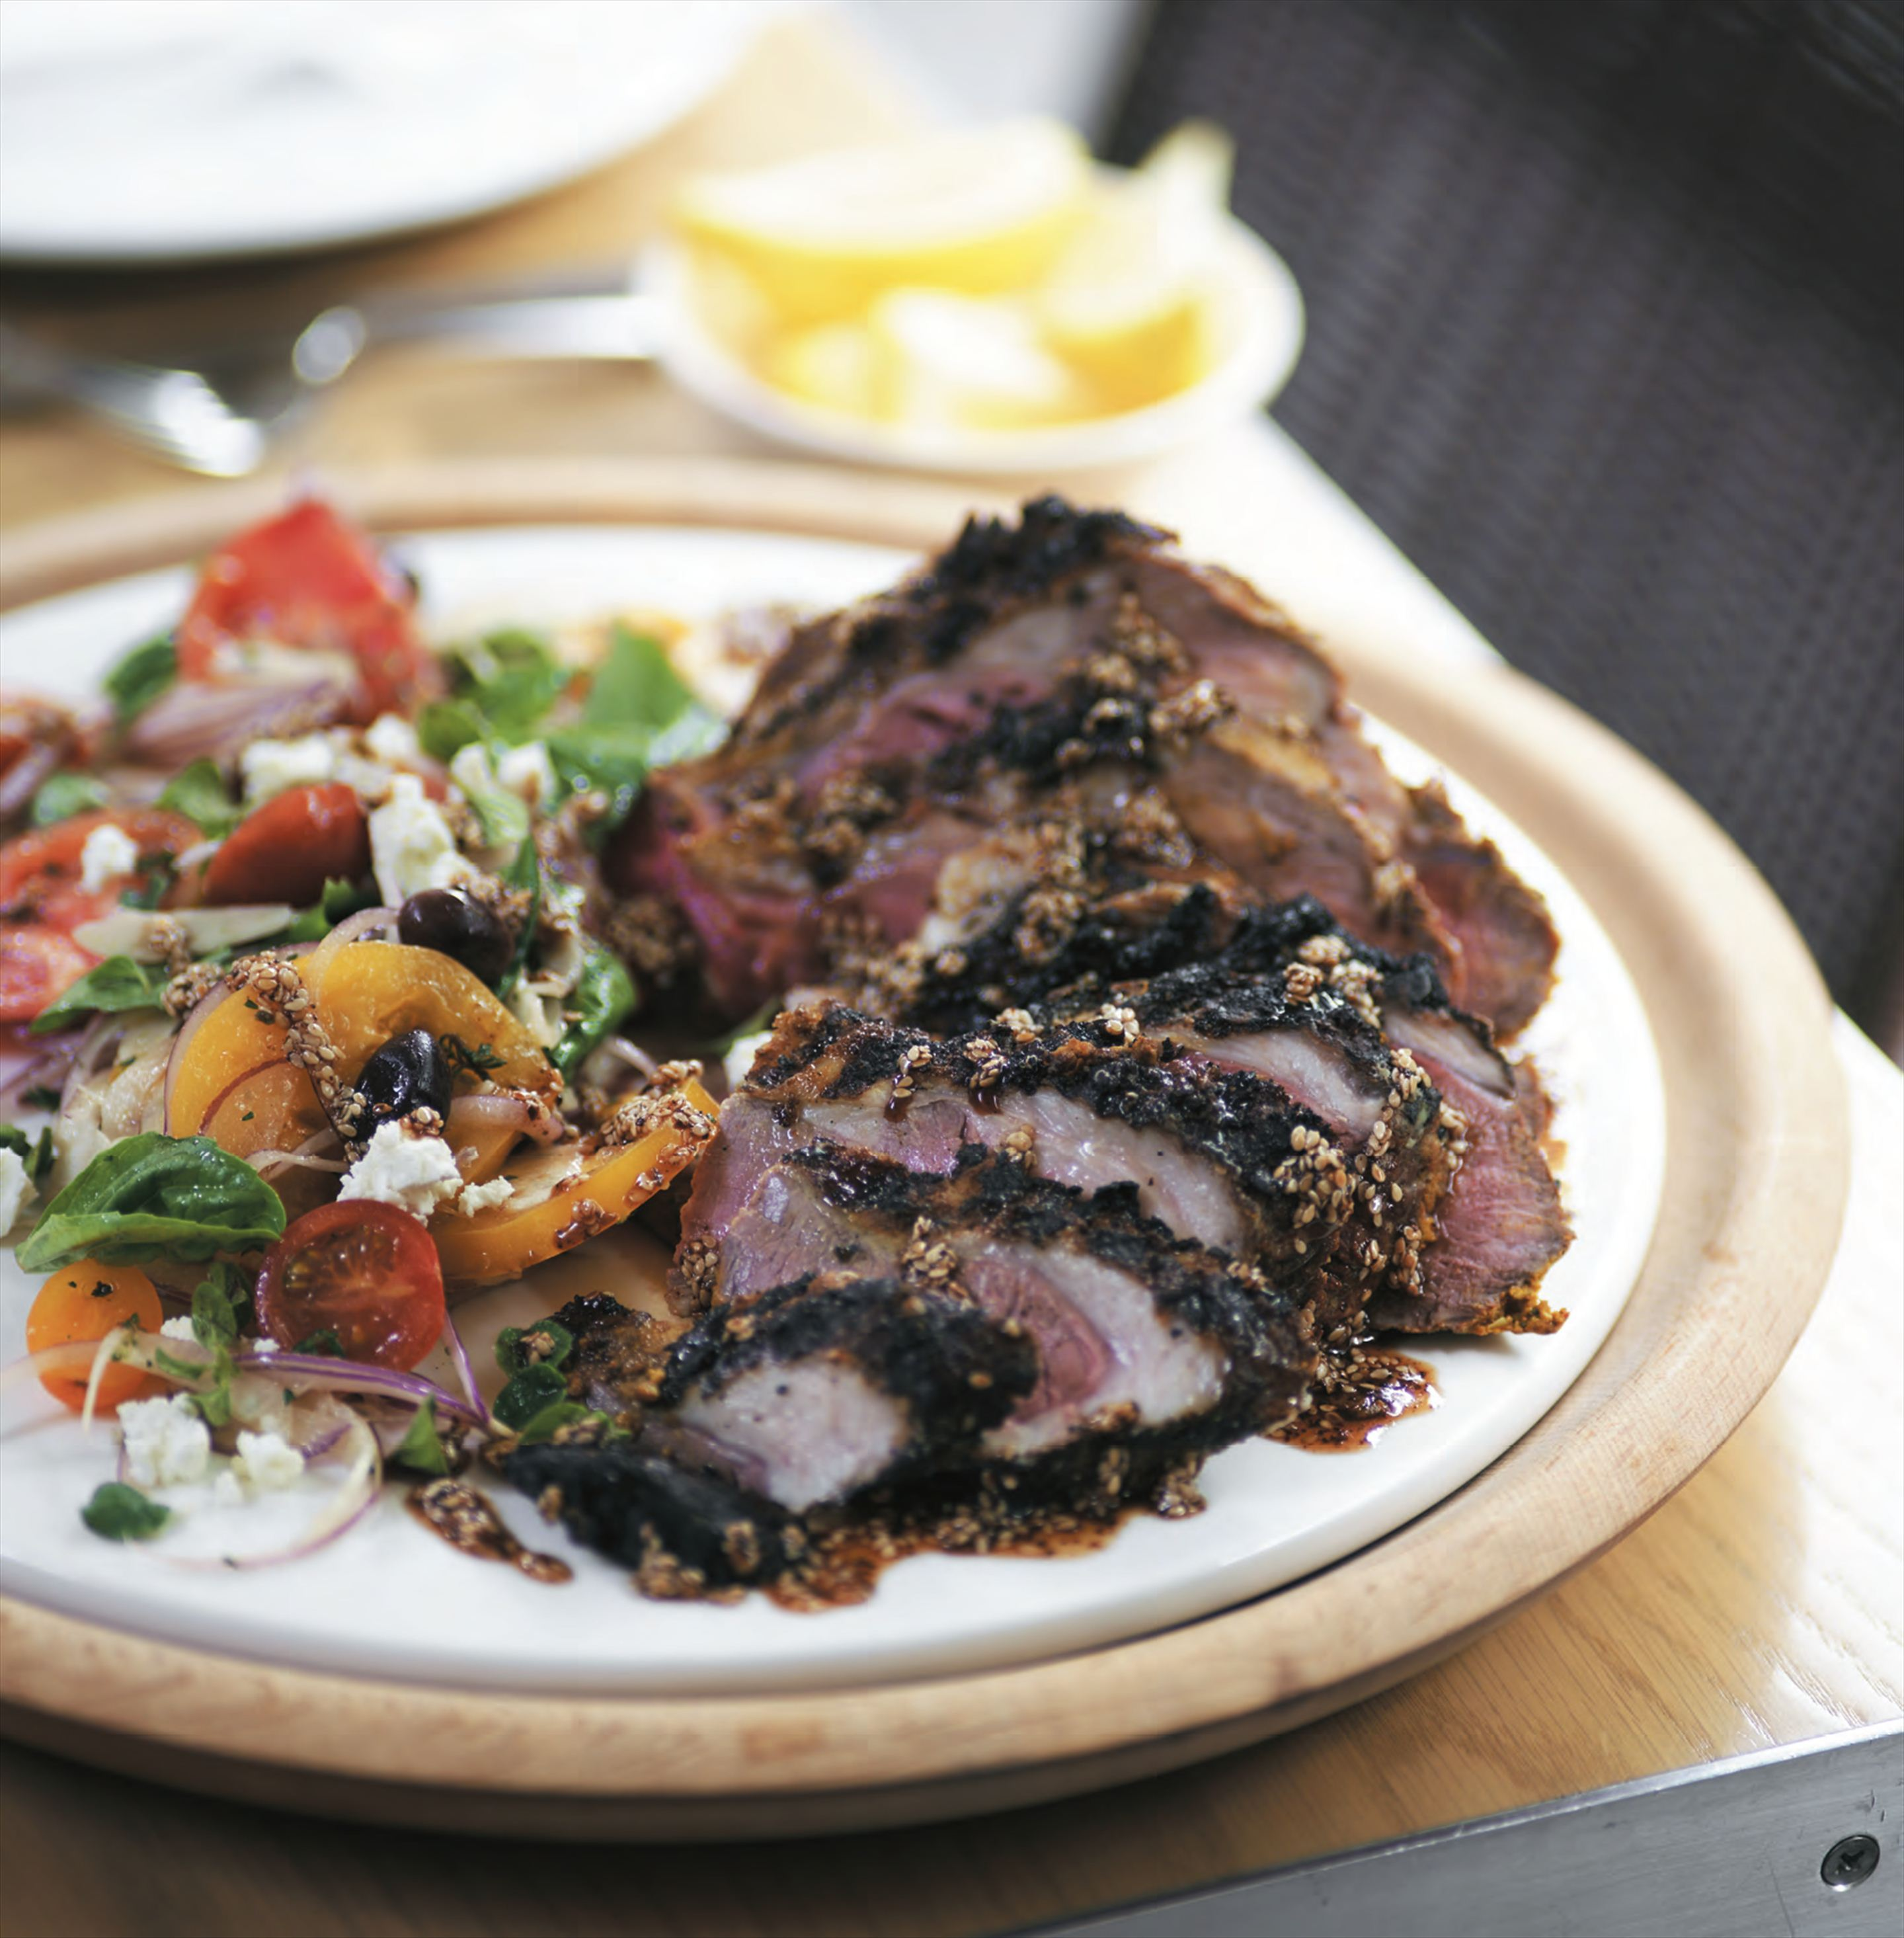 Barbecued butterflied leg of lamb with Lebanese tomato salad